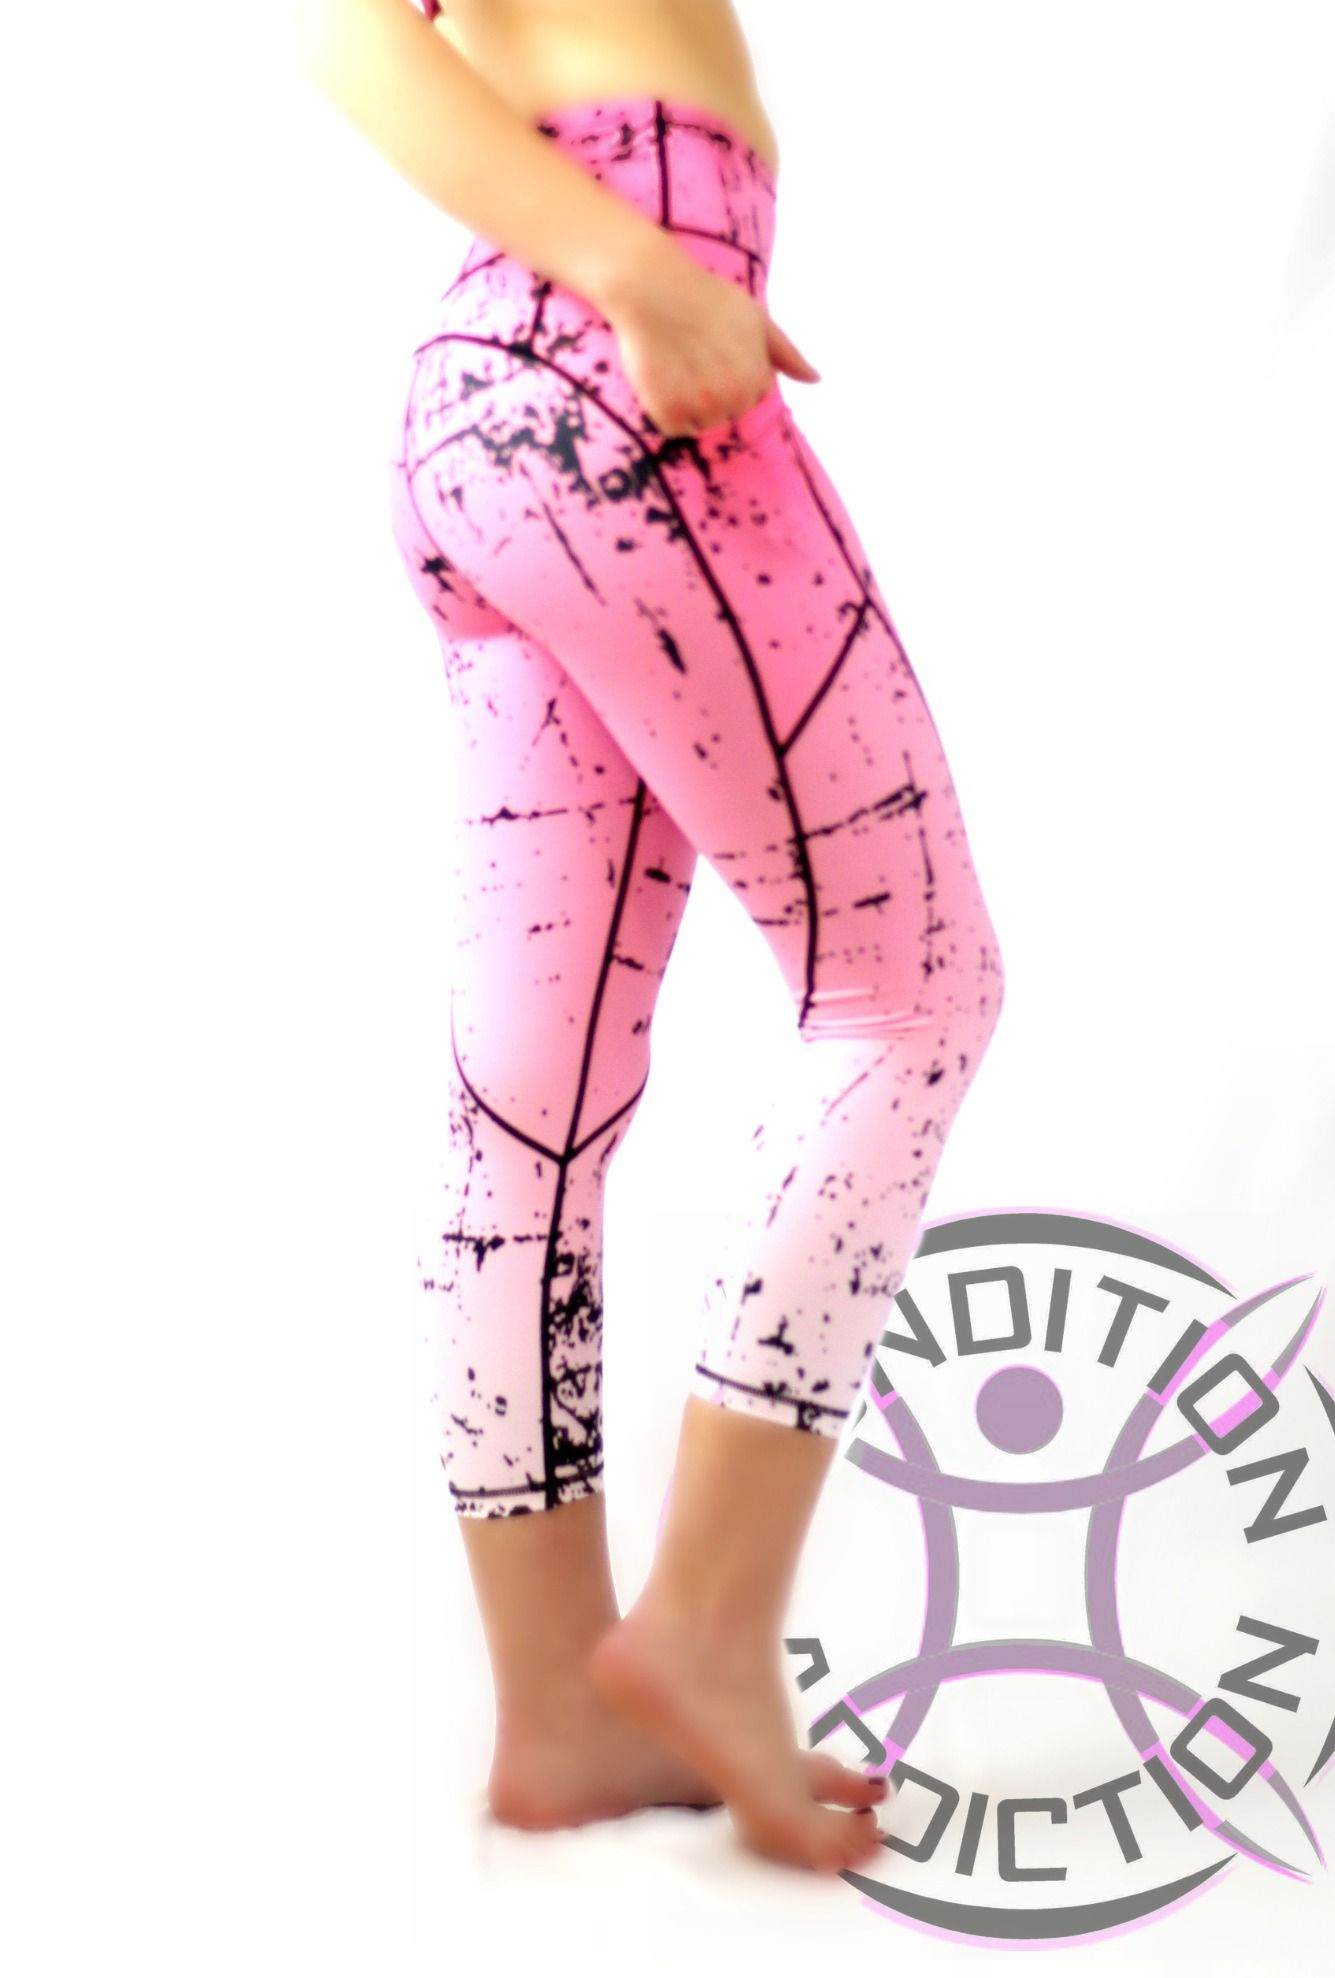 Athletic Club Addict clothing, Clothes, Clothing brand